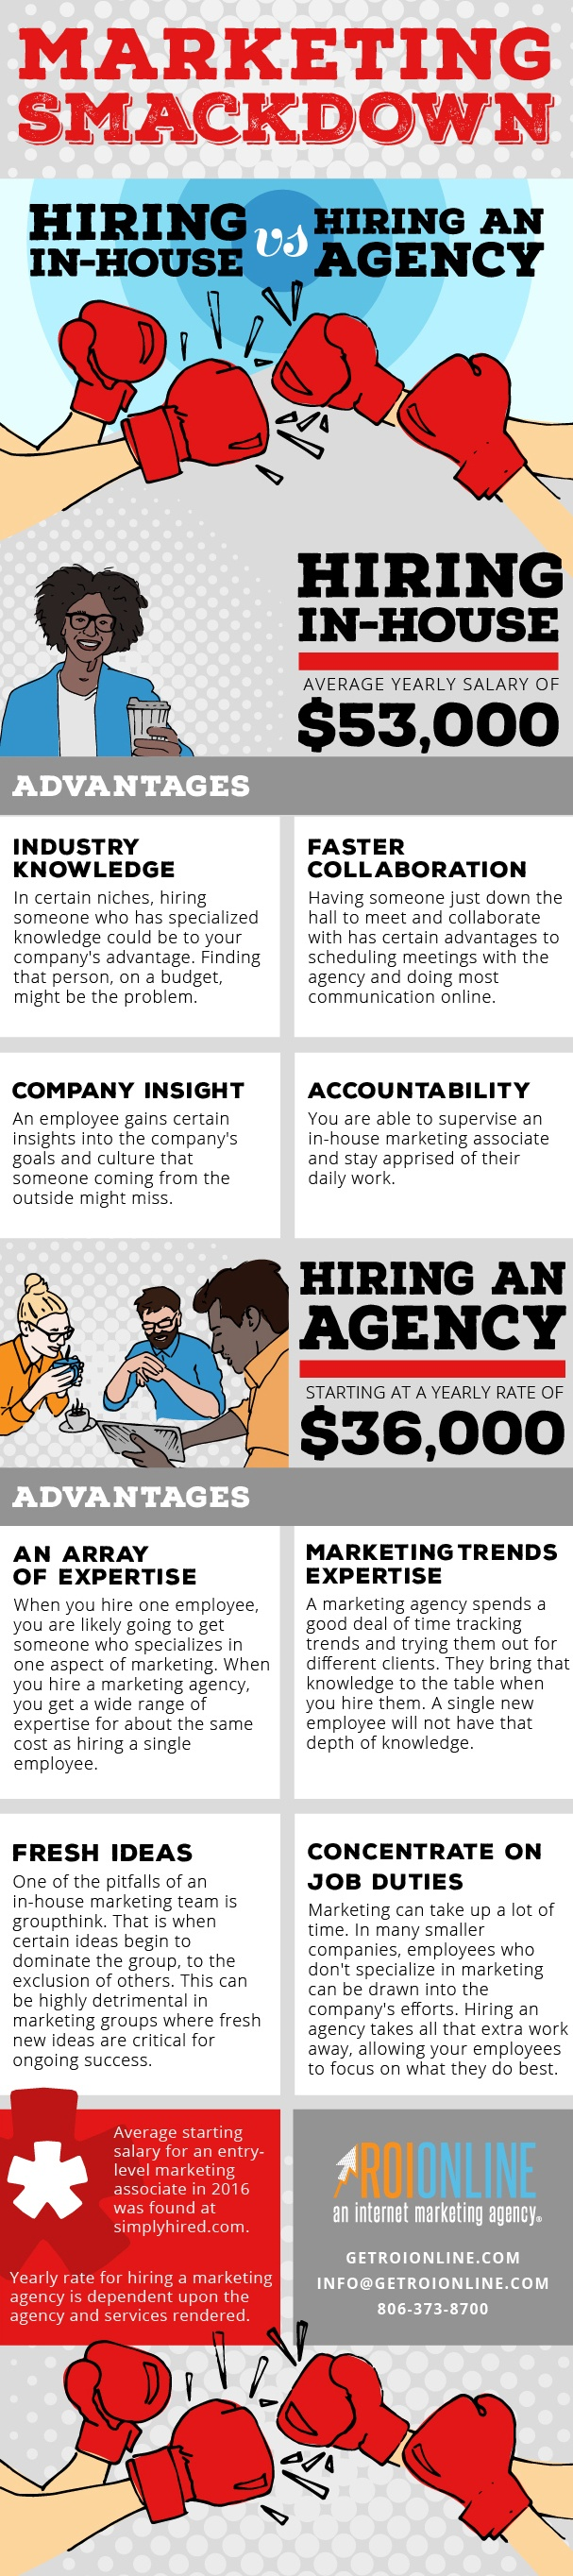 EmployeeVSAgency-ROI_Infographic_2.jpg